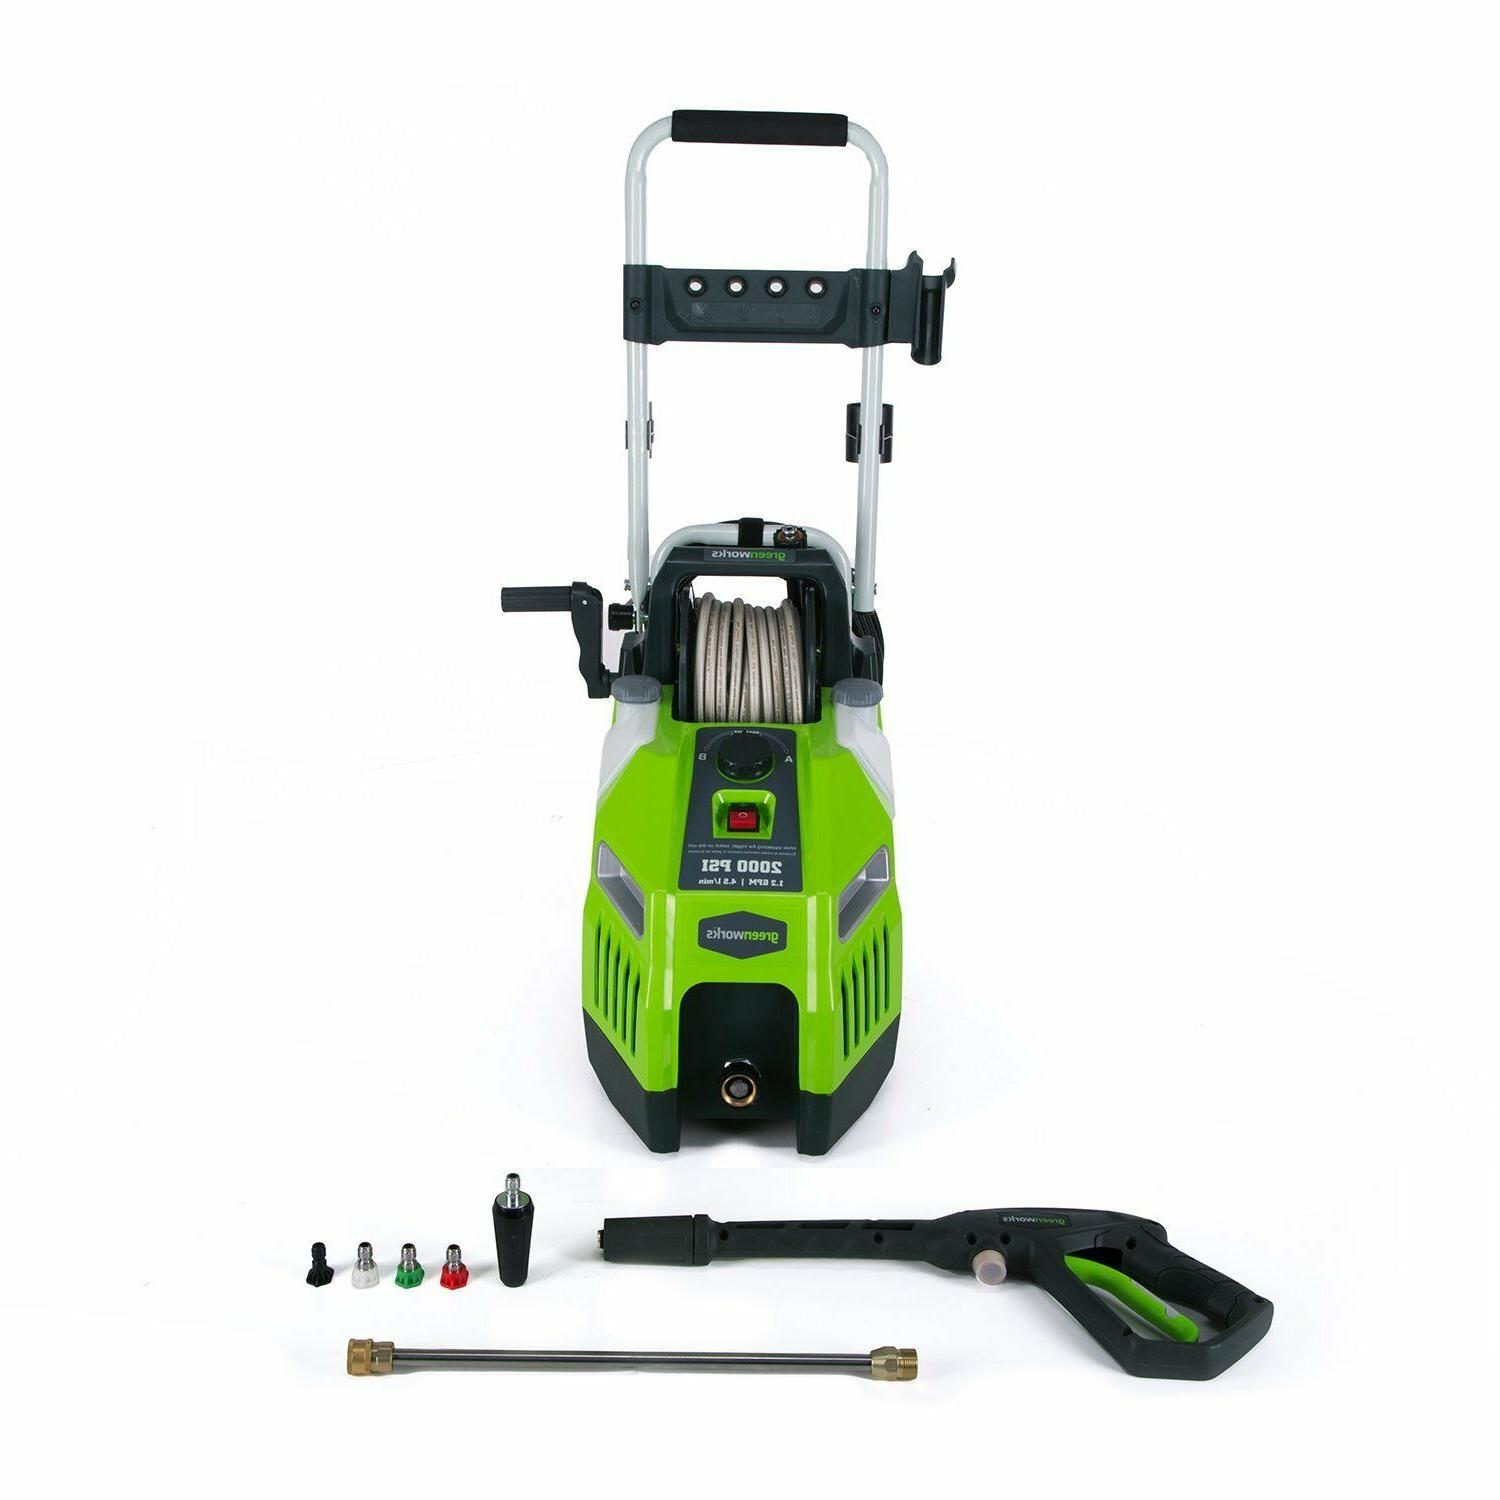 Greenworks Gpw2001 2000 Psi Horz Prs Washer Manual Guide